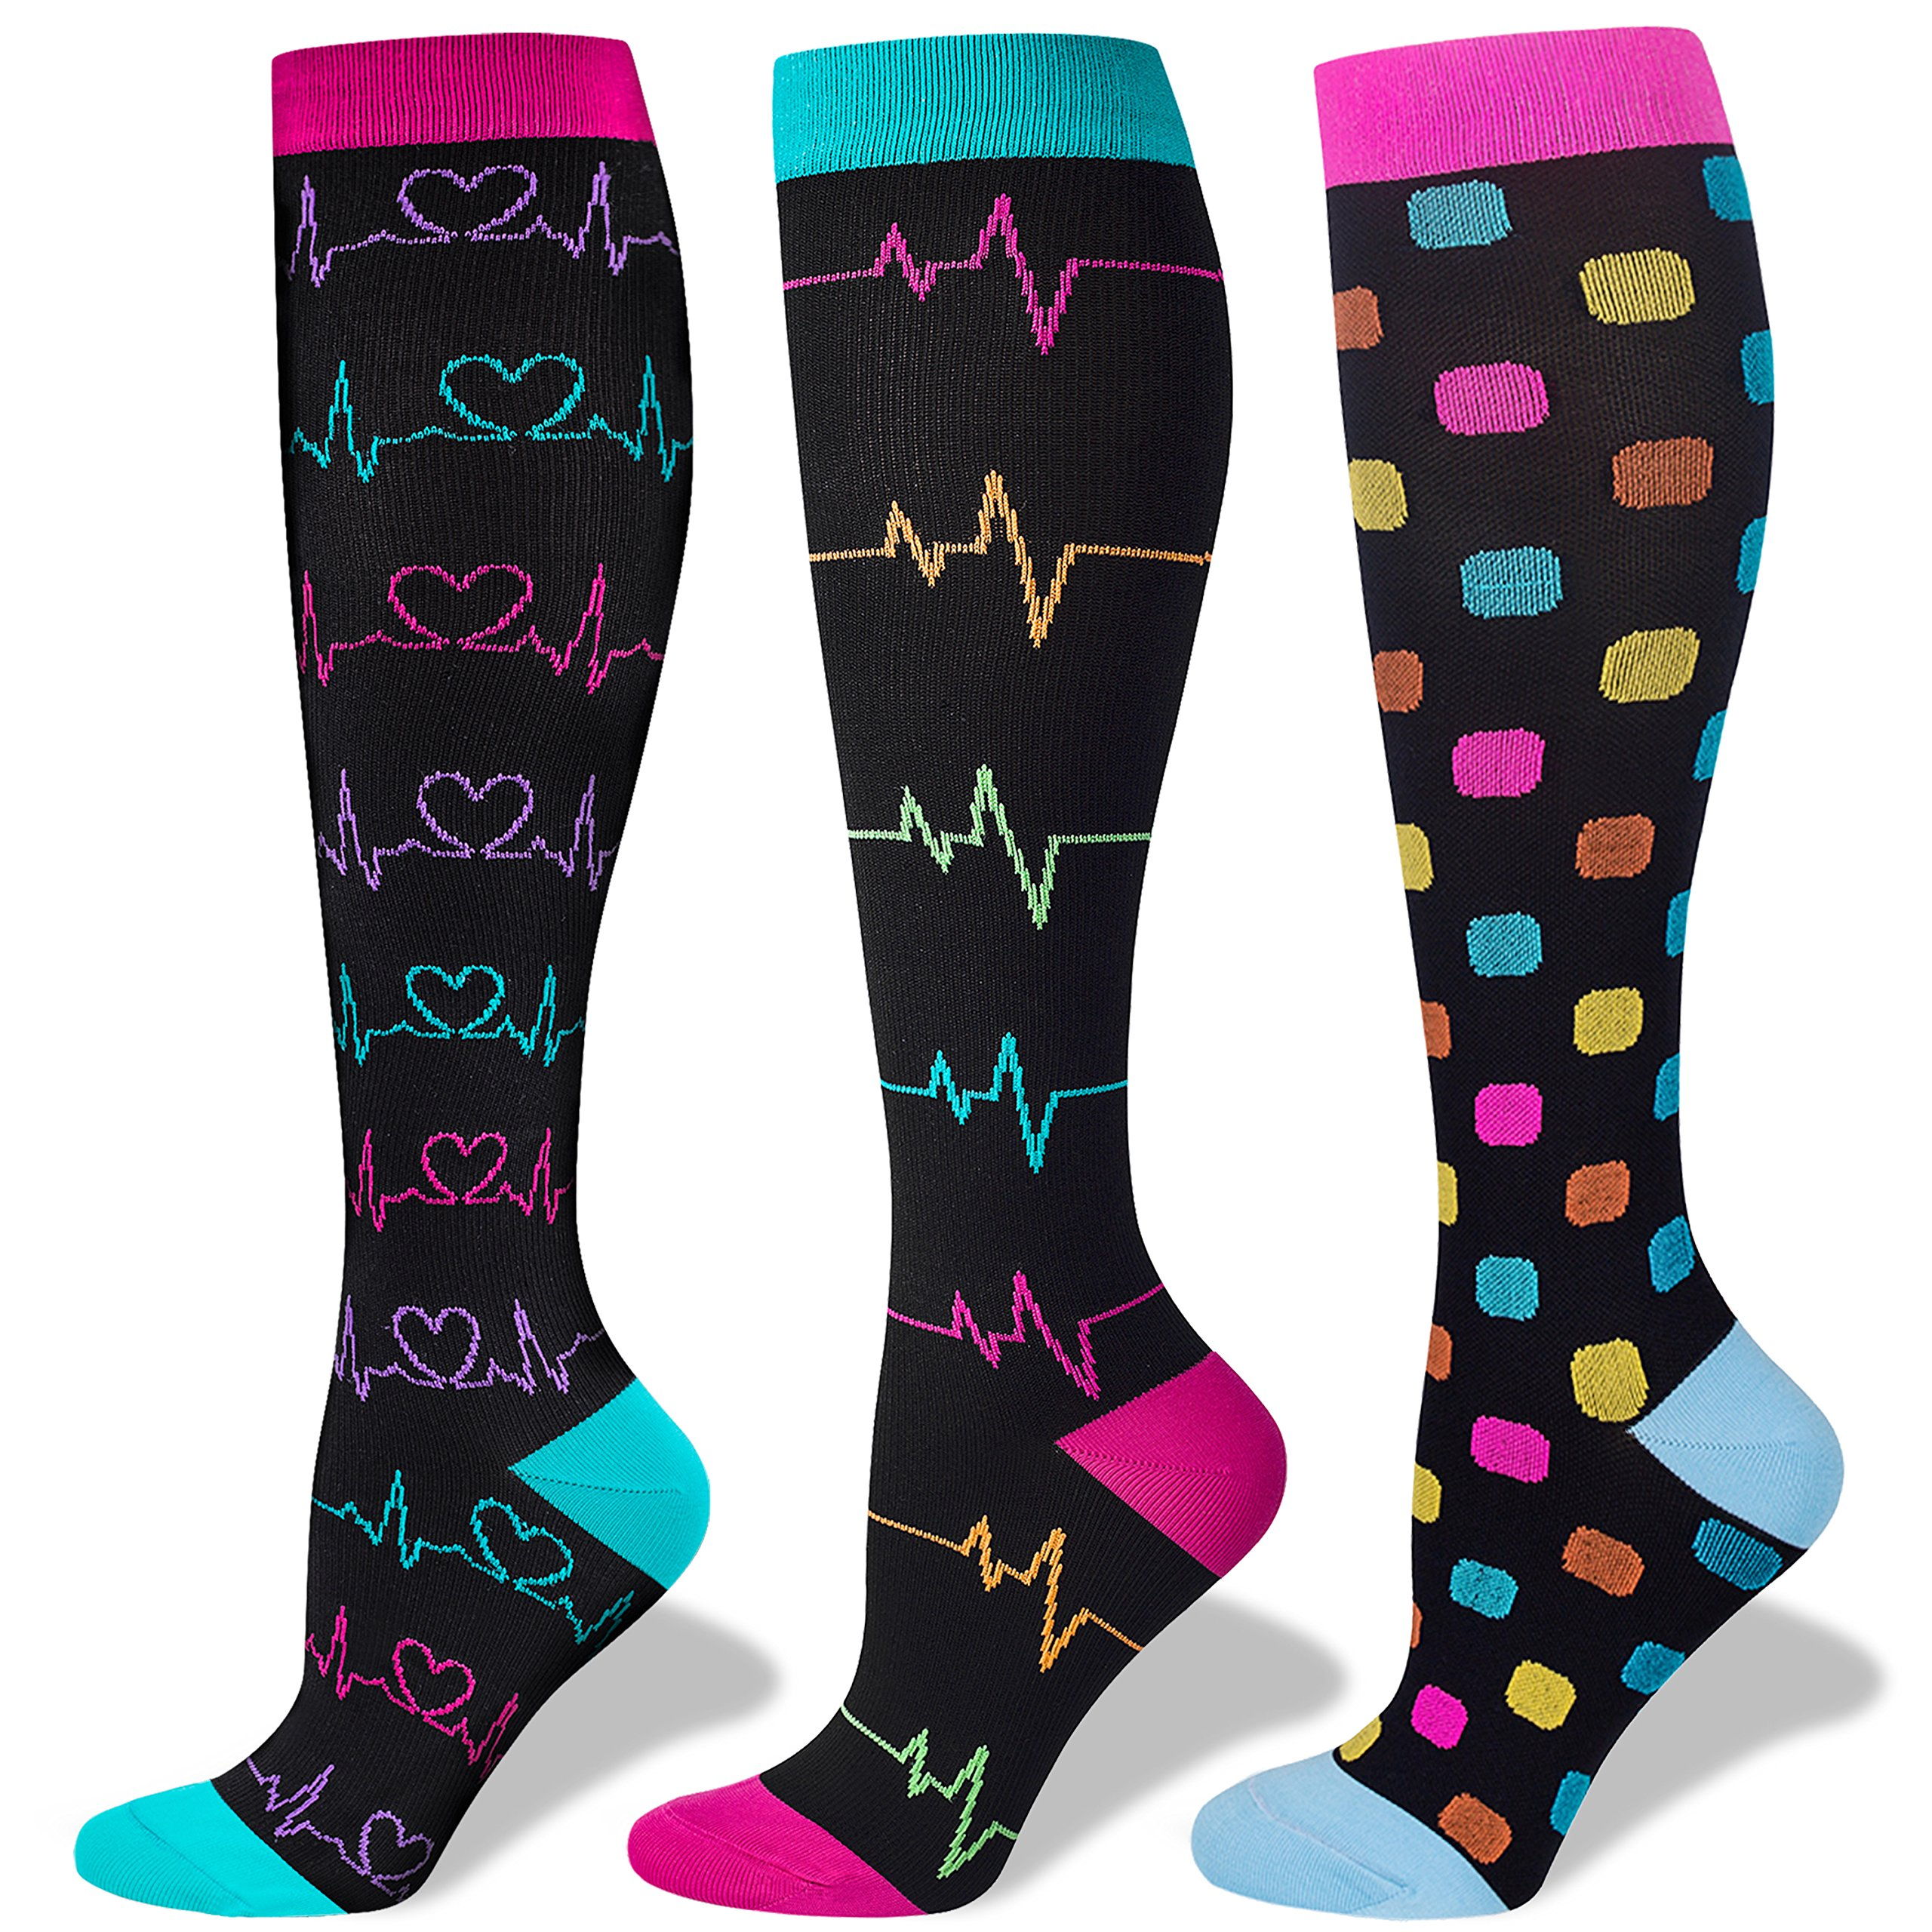 3 Pairs Compression Socks for Nurse(Women)|20-30mmHg Graduated Knee High Stocking |Anti Fatigue & Prevent Swelling in 12h Shift by LEVSOX (Image #1)